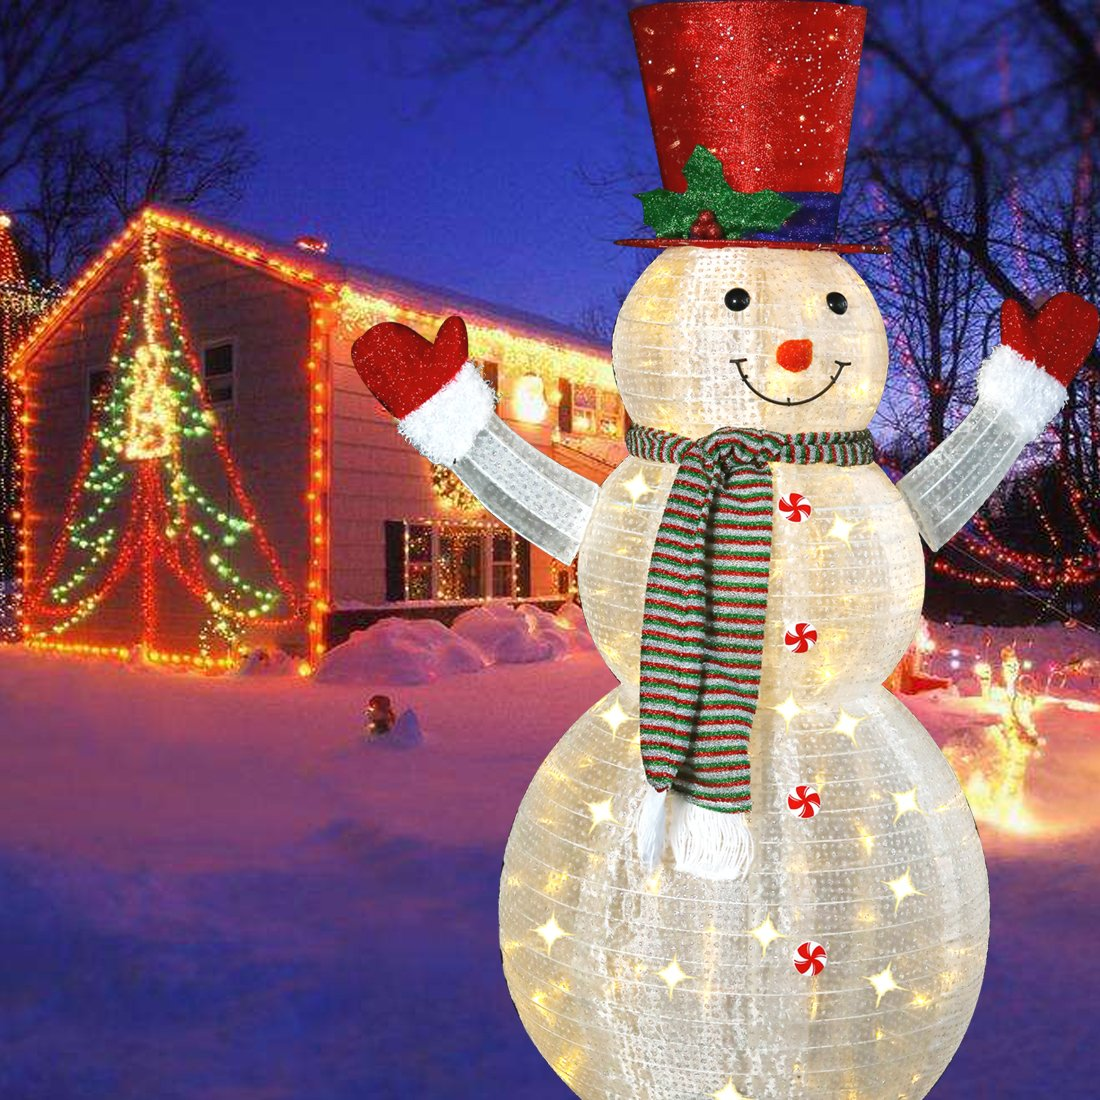 60'' LED Popup Snowman Outdoor Collapsible Lighted Snowman Christmas Yard Decorations with 120 Lights